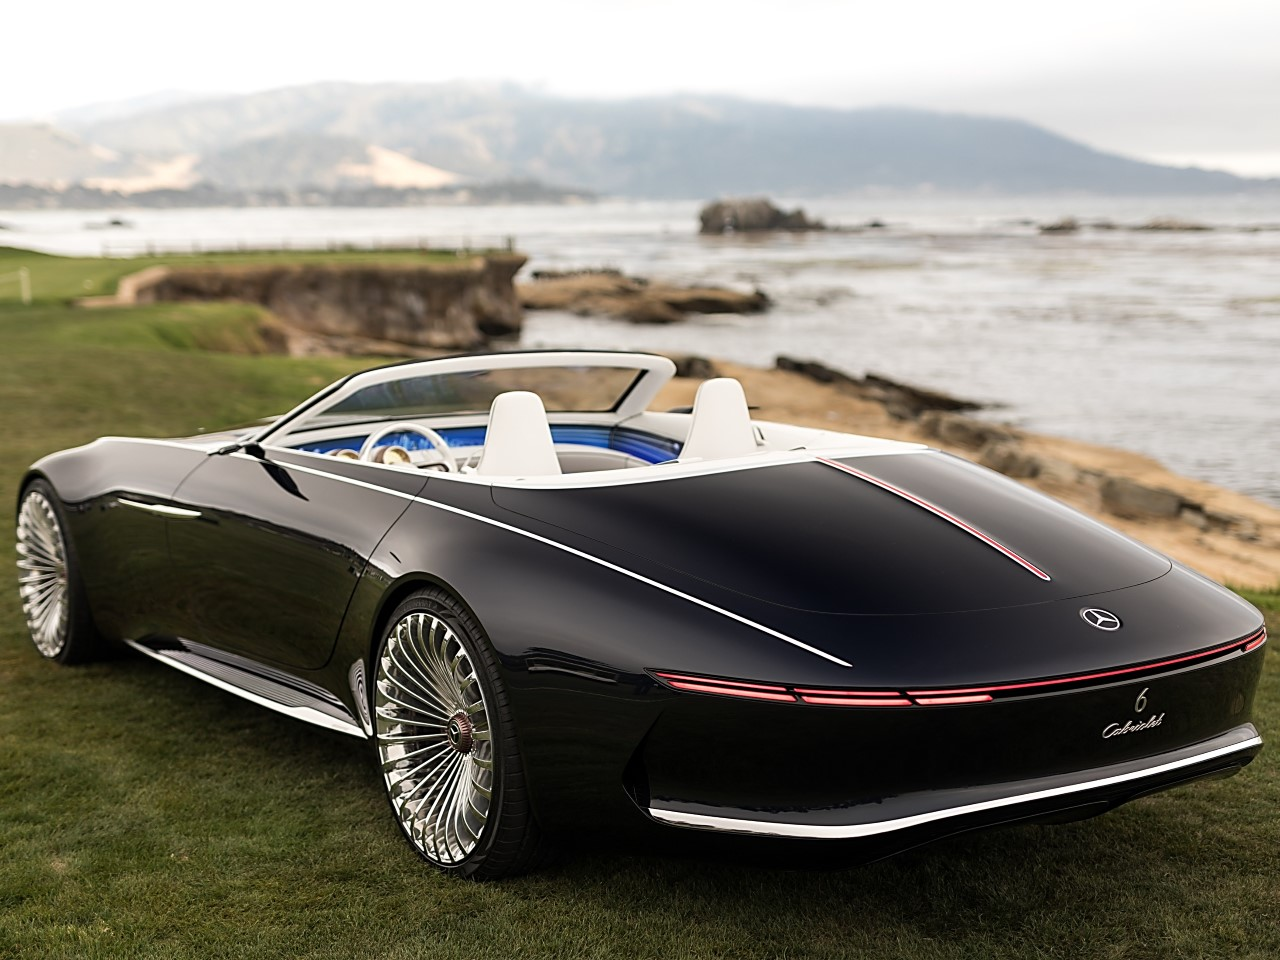 Mercedes-Maybach 10